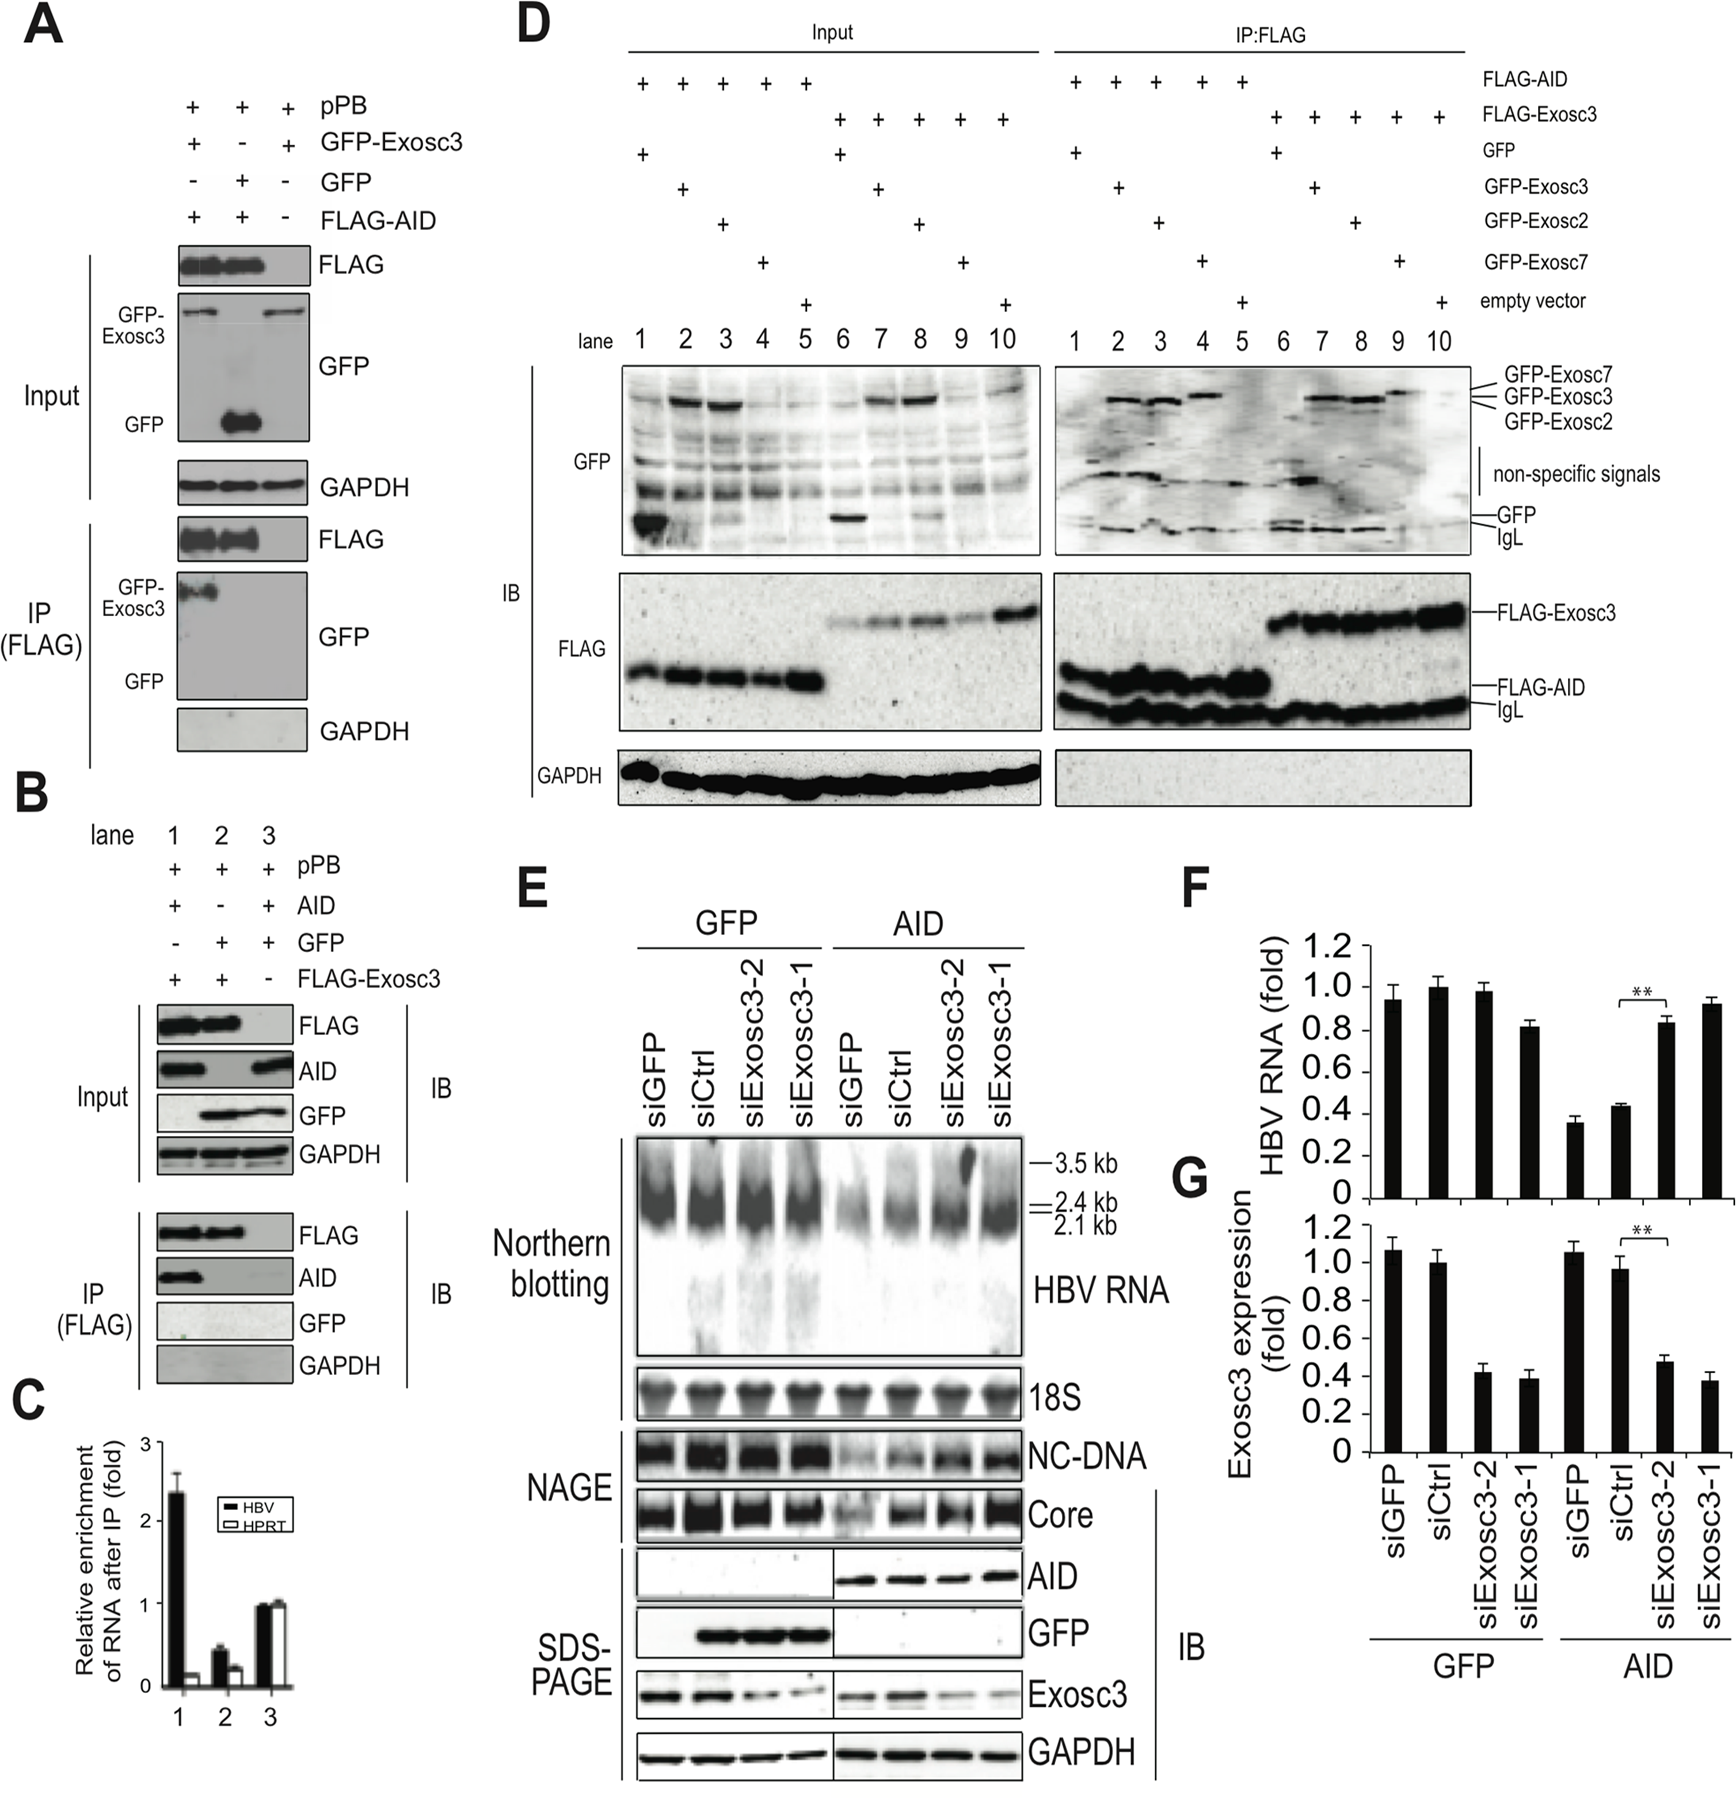 AID inducing HBV RNA reduction depends on Exosc3.